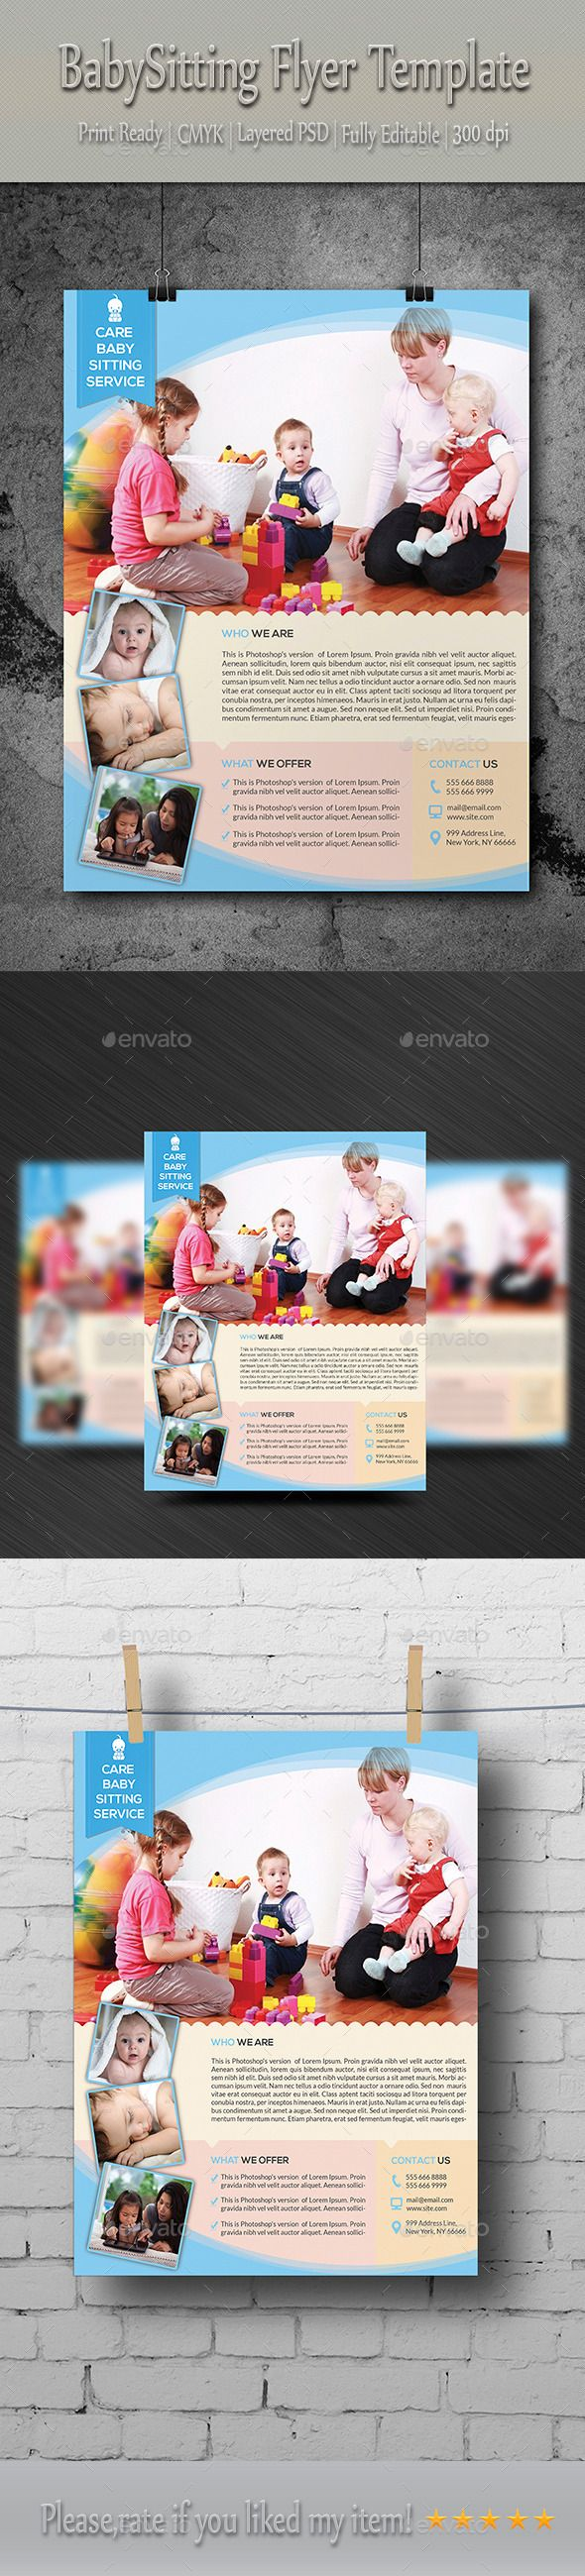 Babysitting  Daycare Flyer Template  Babysitting Flyer Template